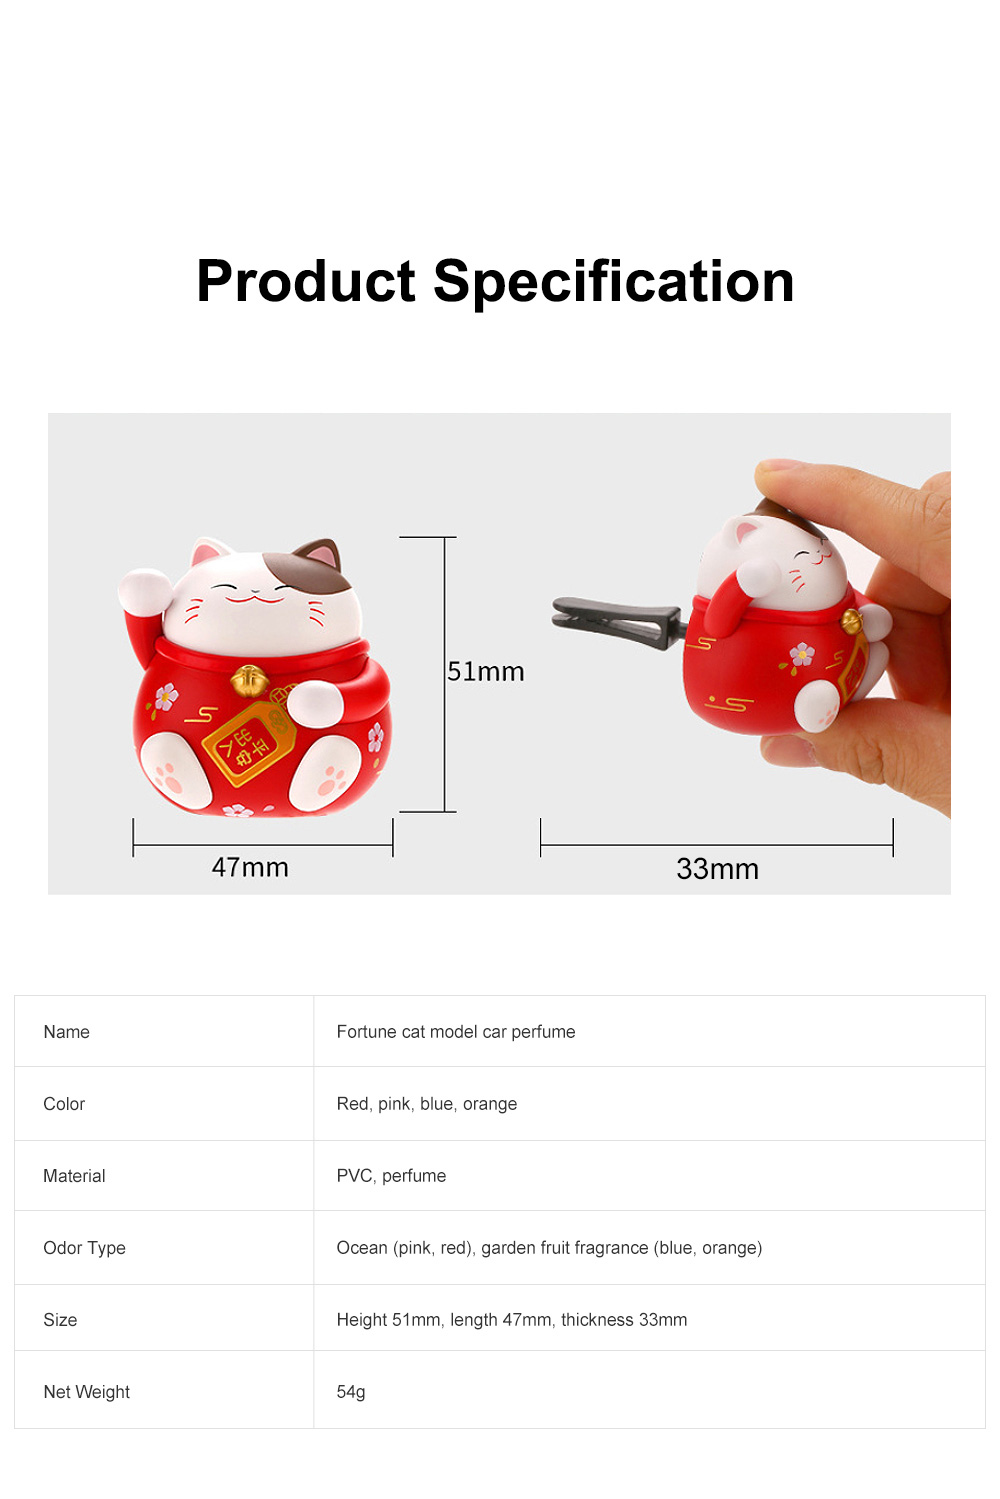 Cute Caron Fortune Cat Model Enduring Light Fragrance Car Perfume Aromatherapy Solid Perfume Ornament 8